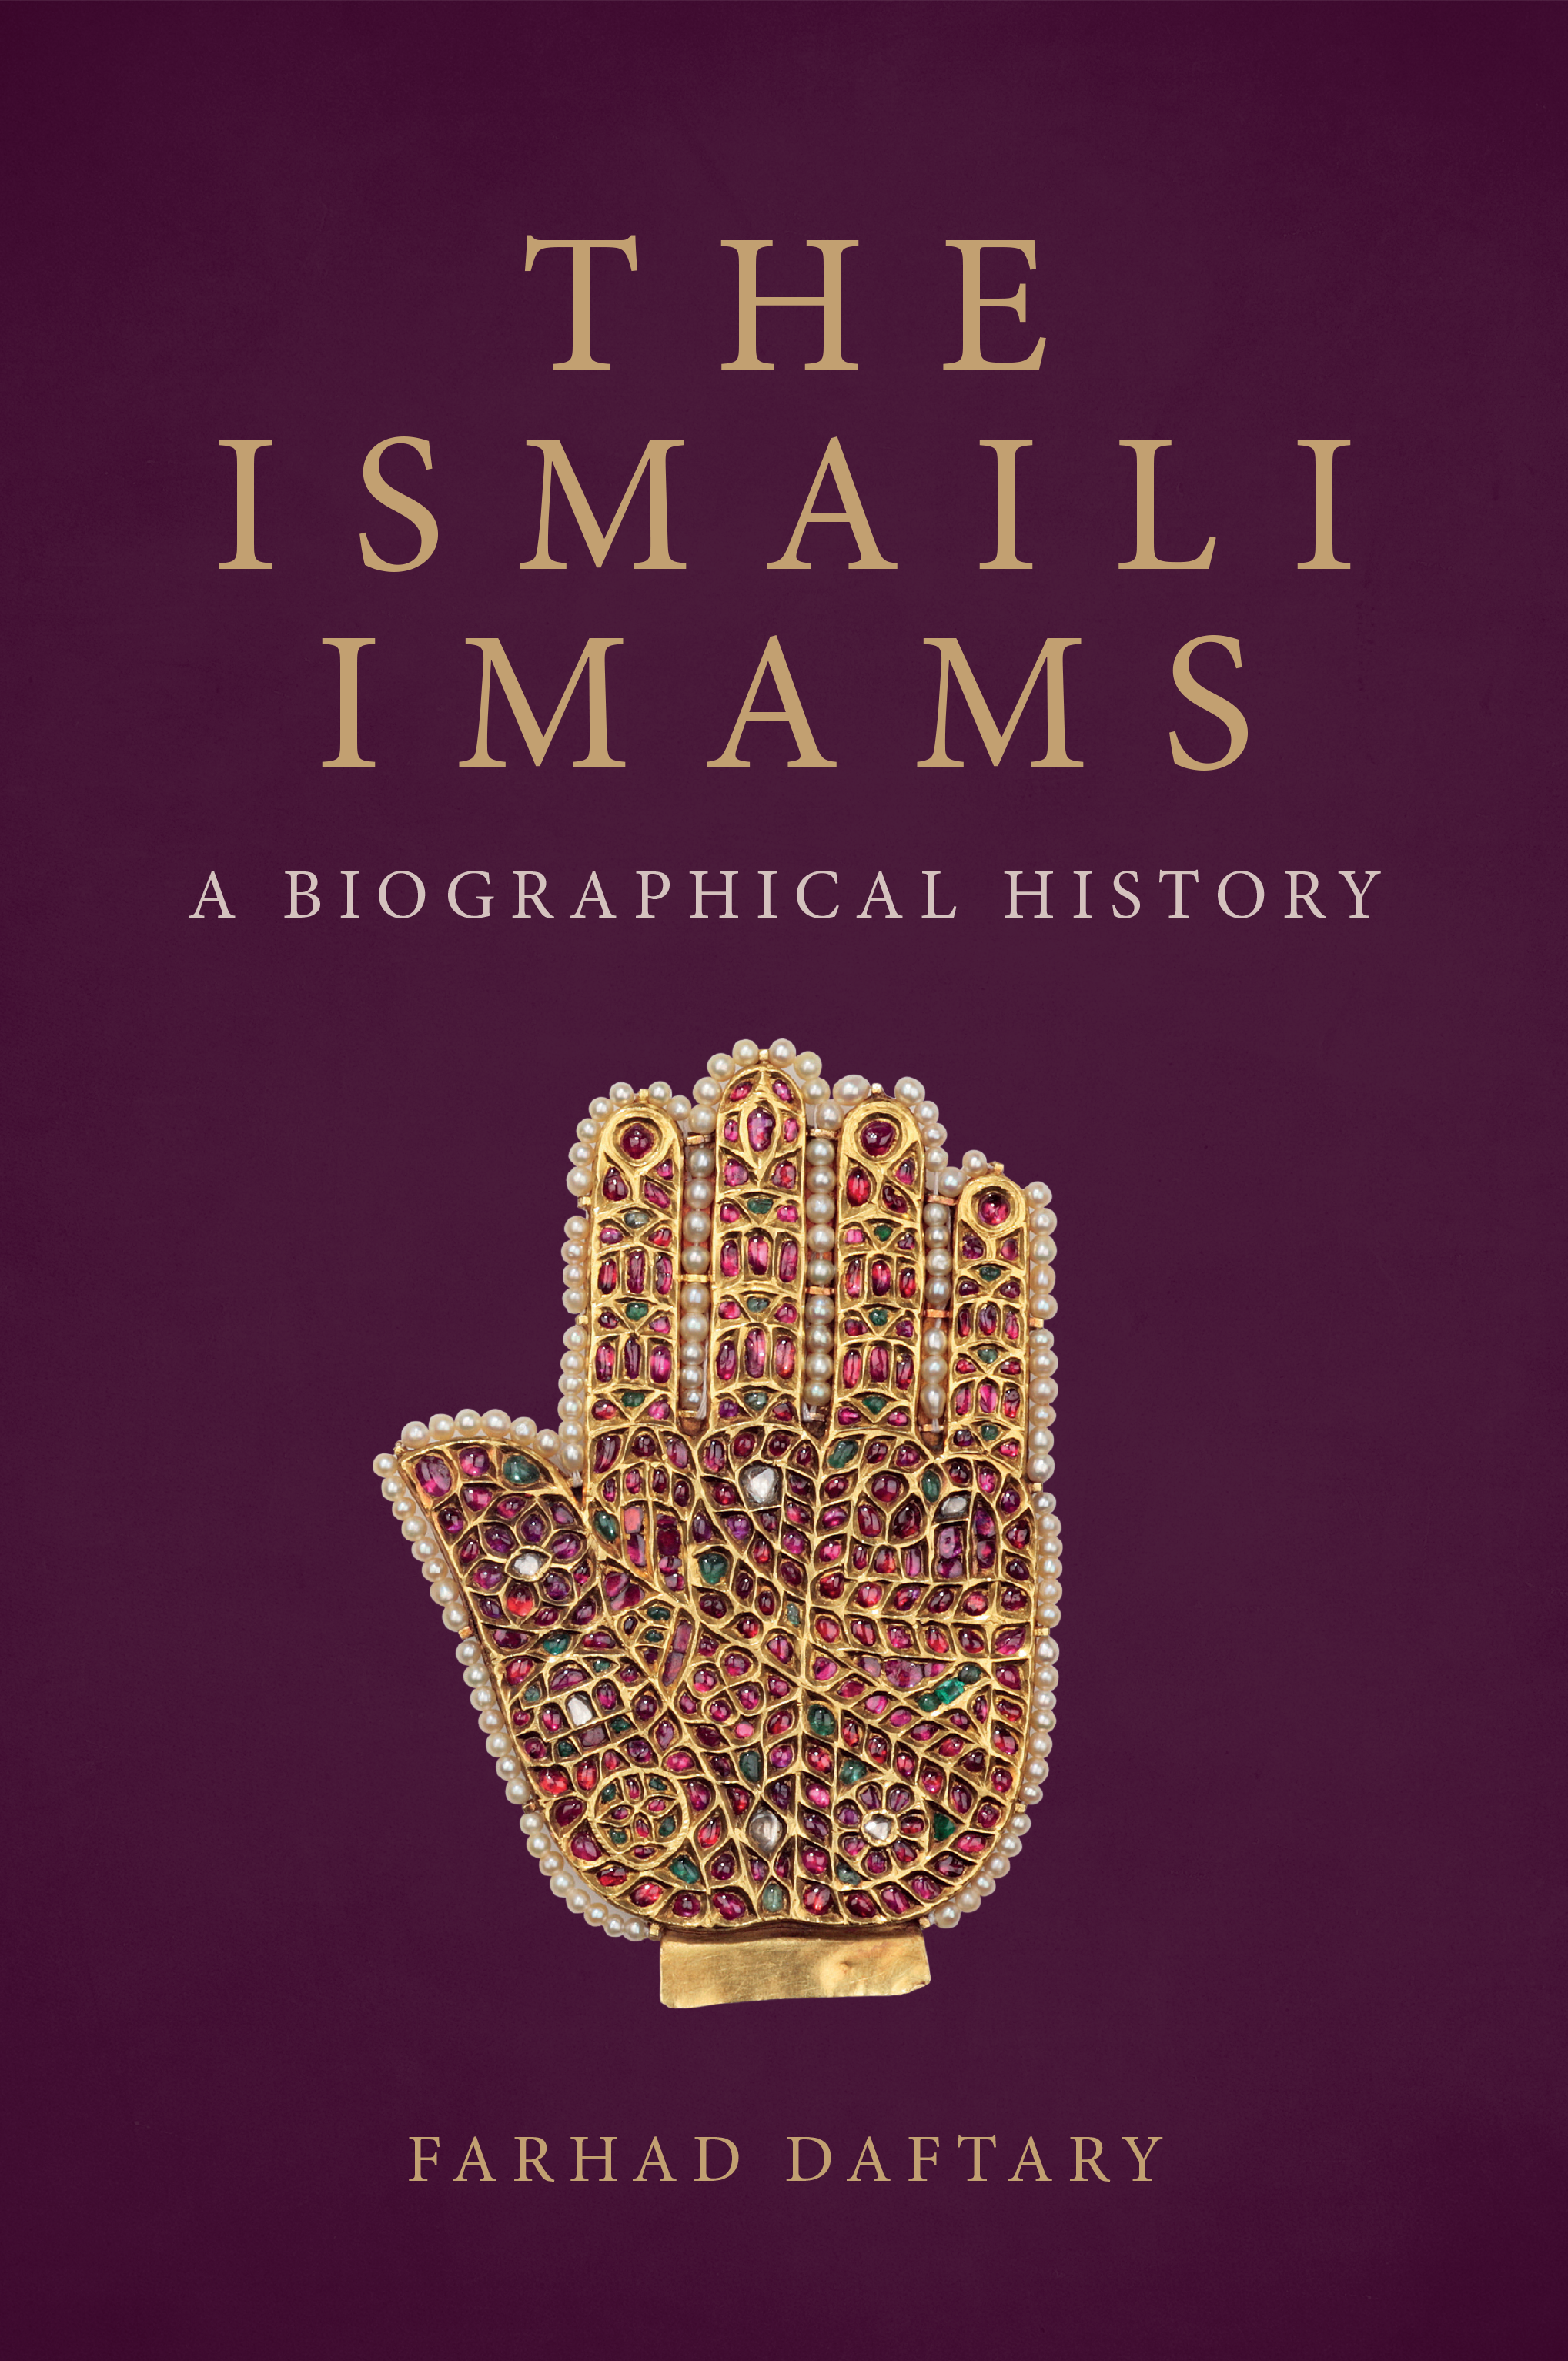 The Ismaili Imams: A Biographical History by Farhad Daftary